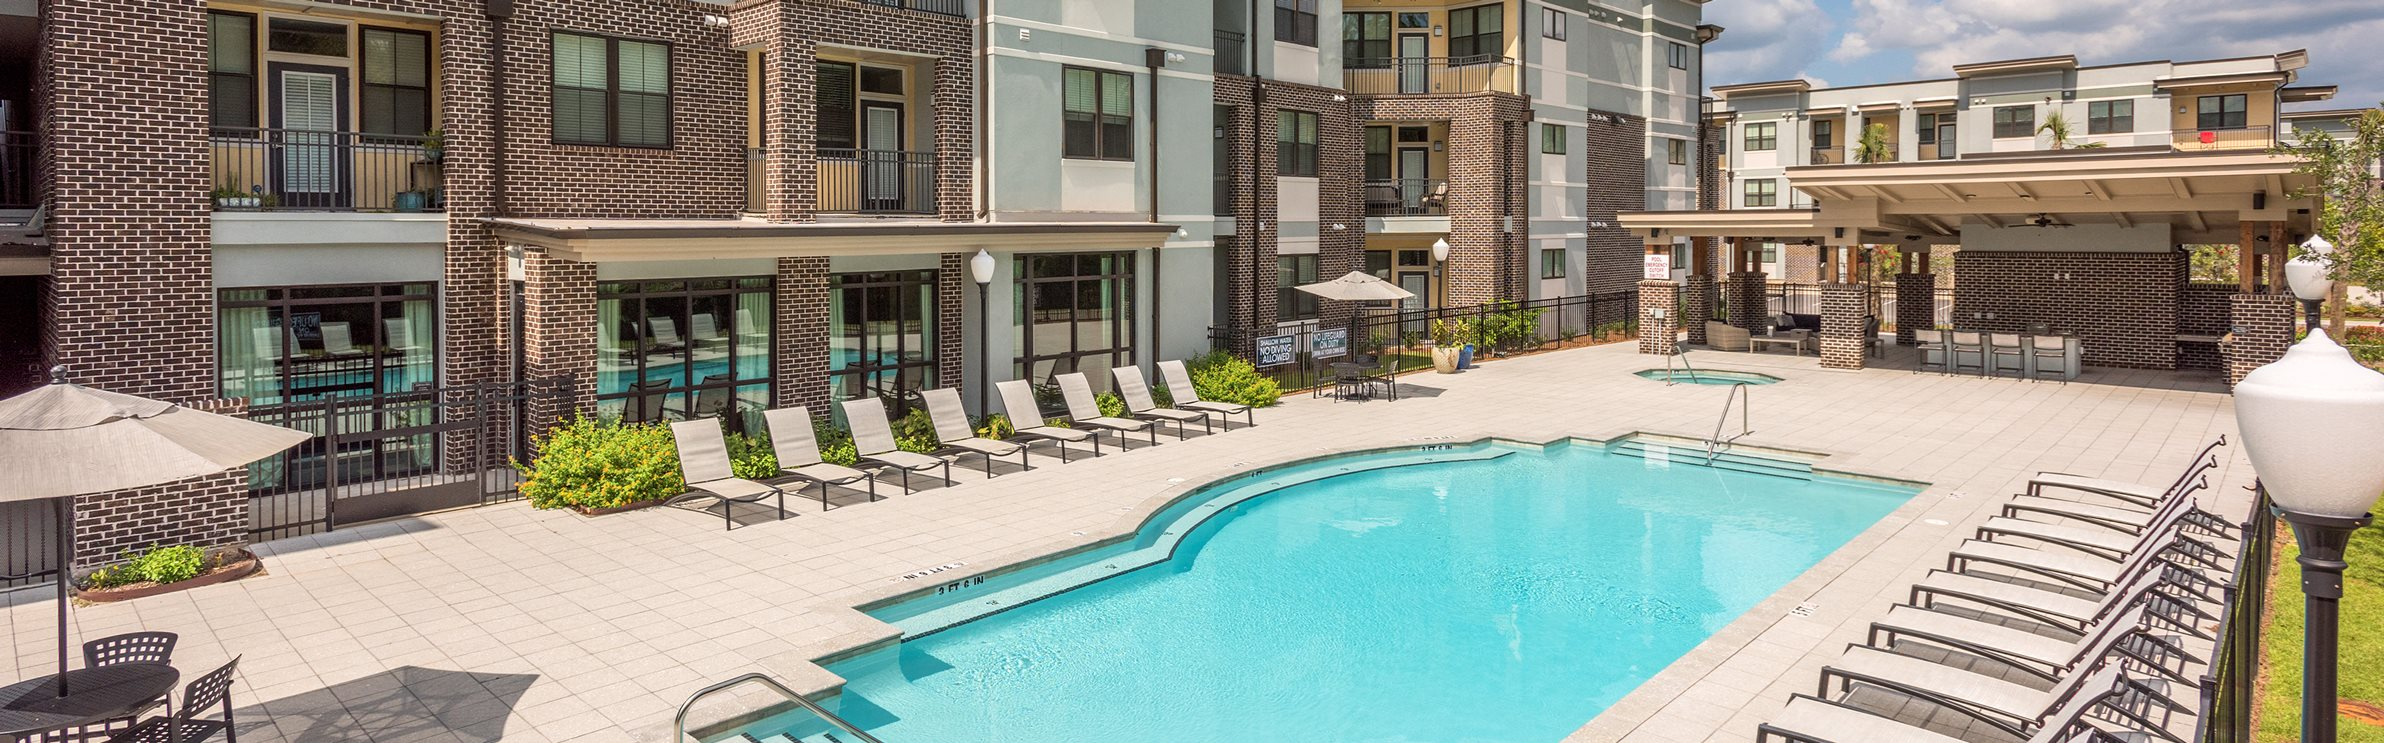 Centre Pointe Apartments pool area